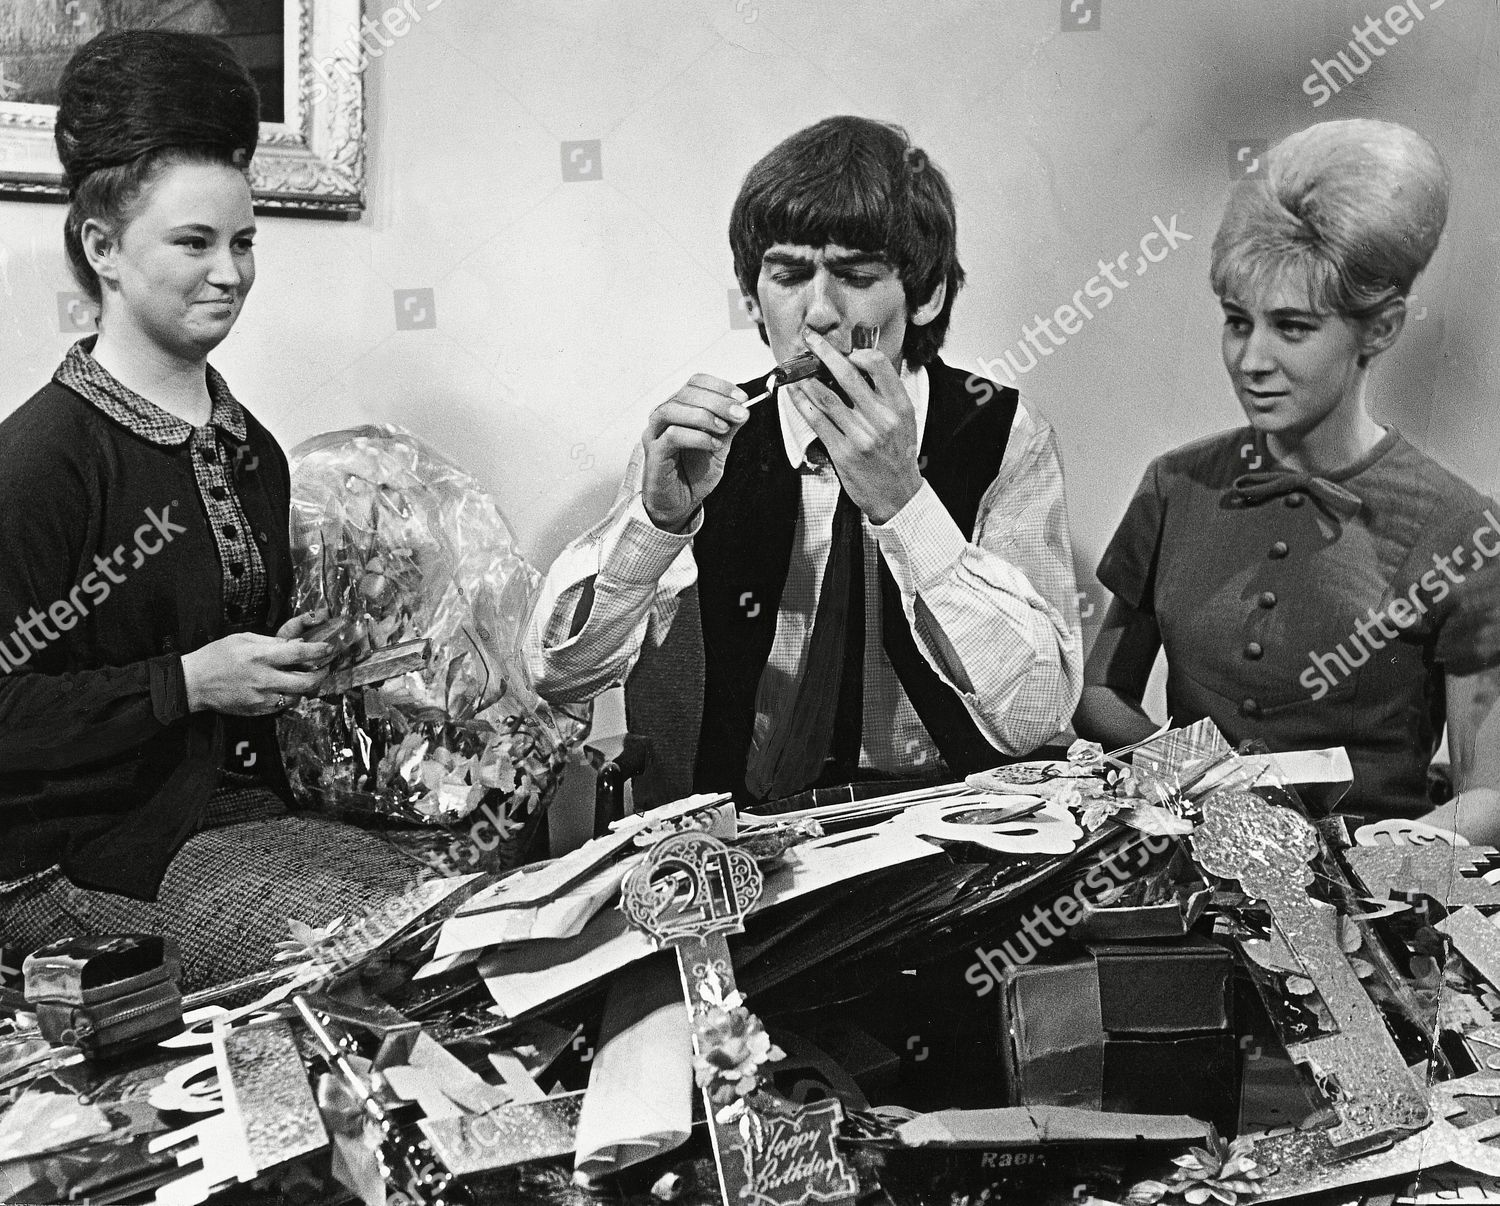 ... Secretaries Of The Beatles Fan Club And Cards He Received From Fans For His 21st Birthday. The Beatle Was Sent An Estimated 15 000 Cards And Gifts.